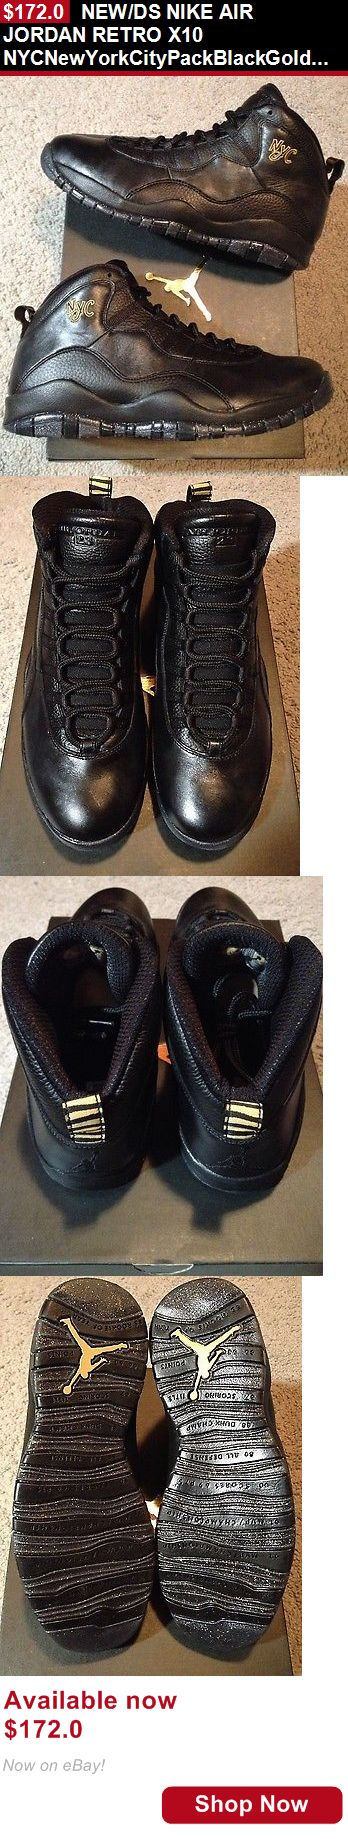 Men shoes: New/Ds Nike Air Jordan Retro X10 Nycnewyorkcitypackblackgold Mens Size 12 Ovo BUY IT NOW ONLY: $172.0